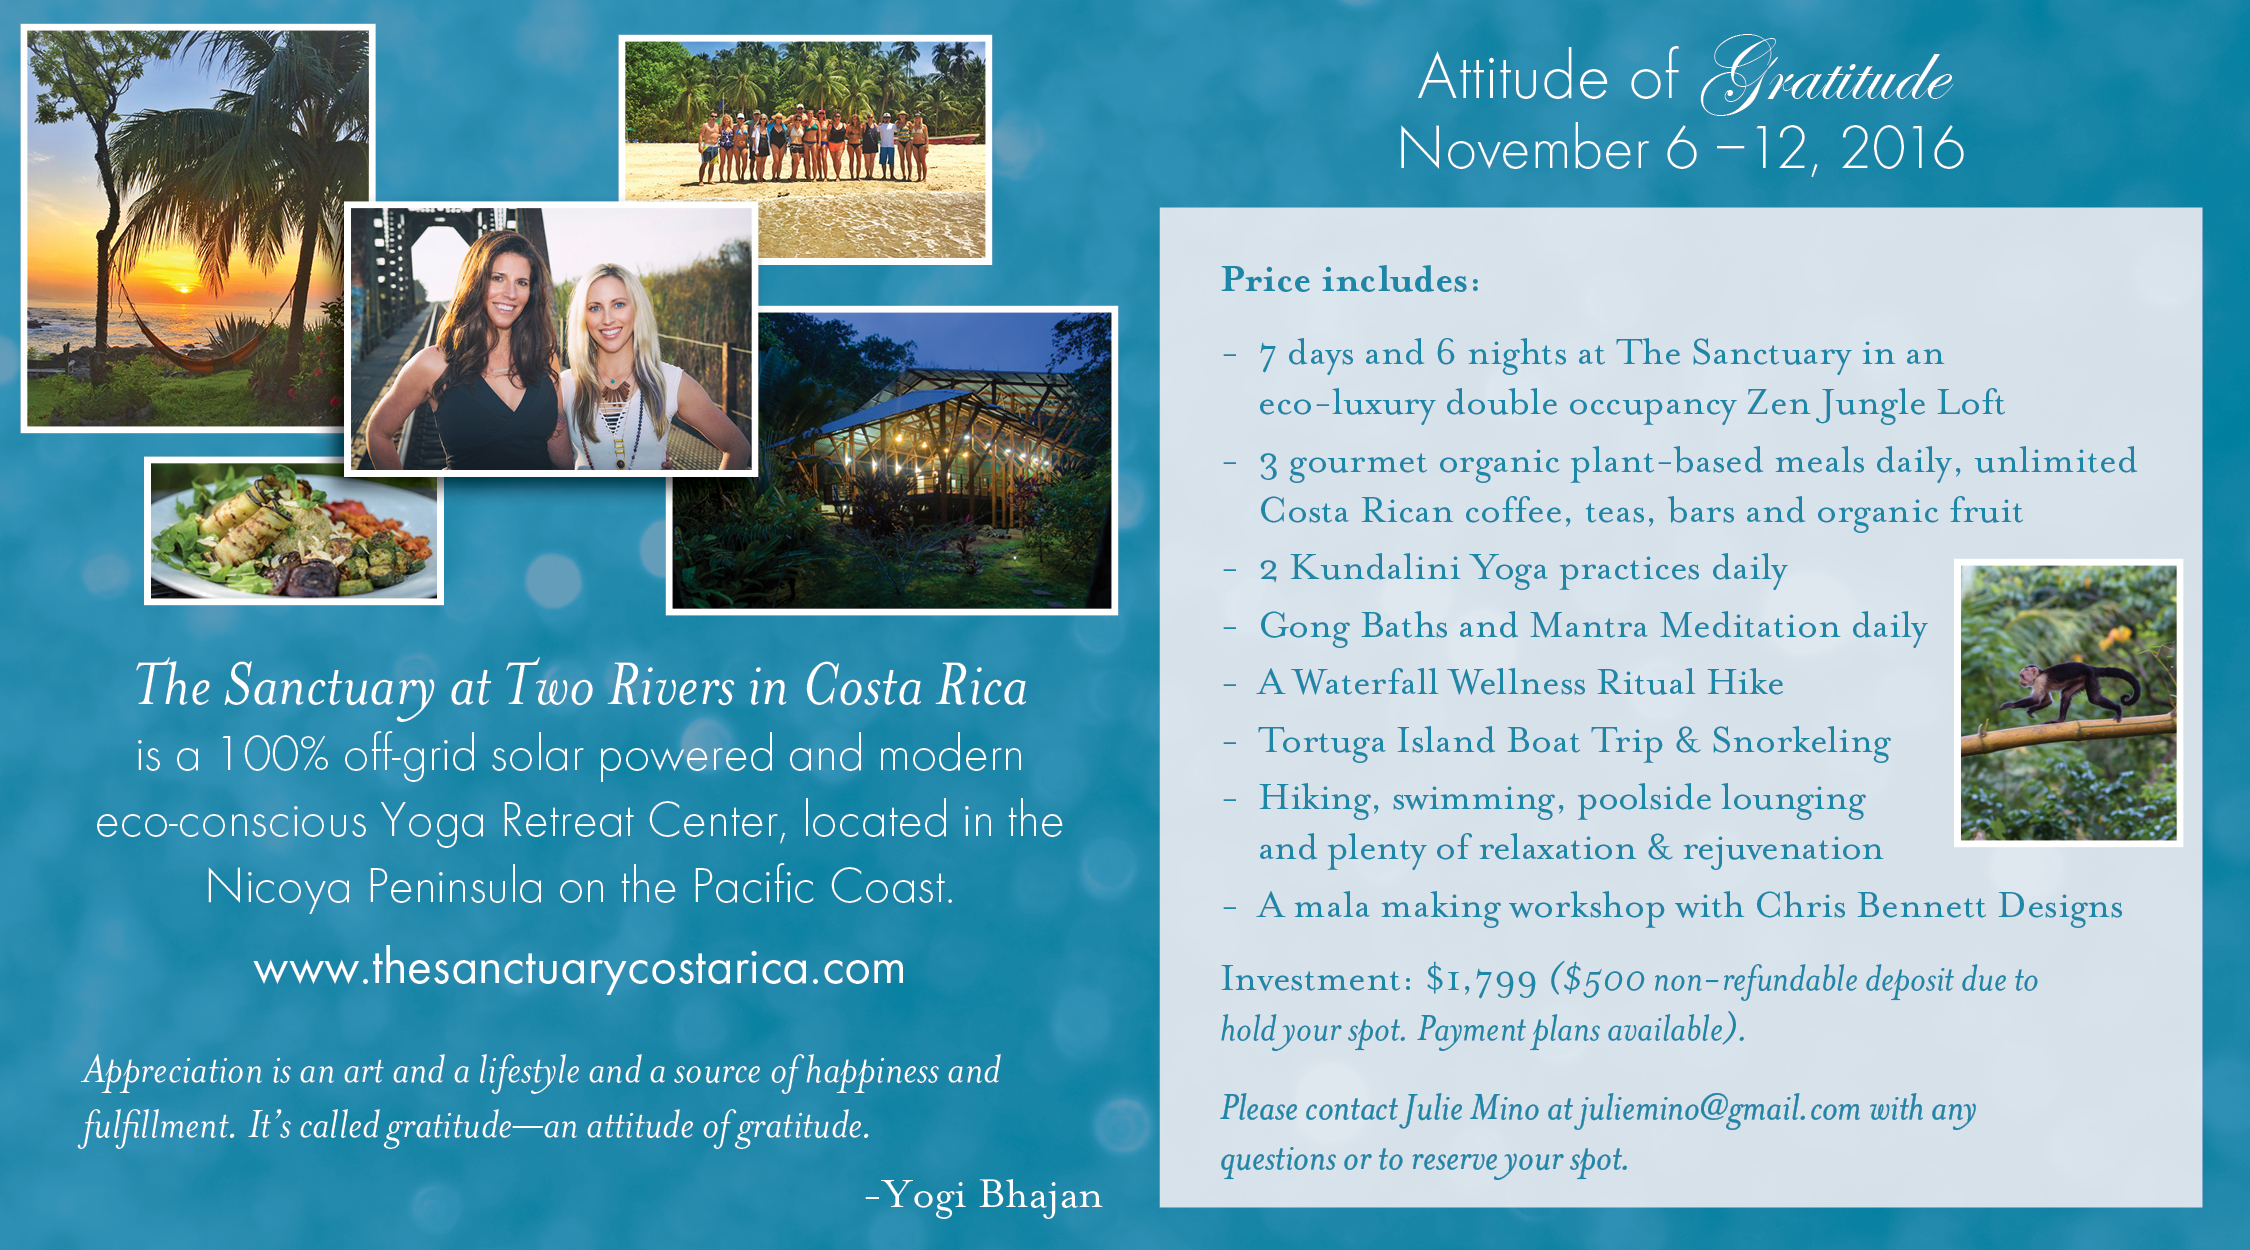 kundalini yoga retreat costa rica November 6-12, 2016